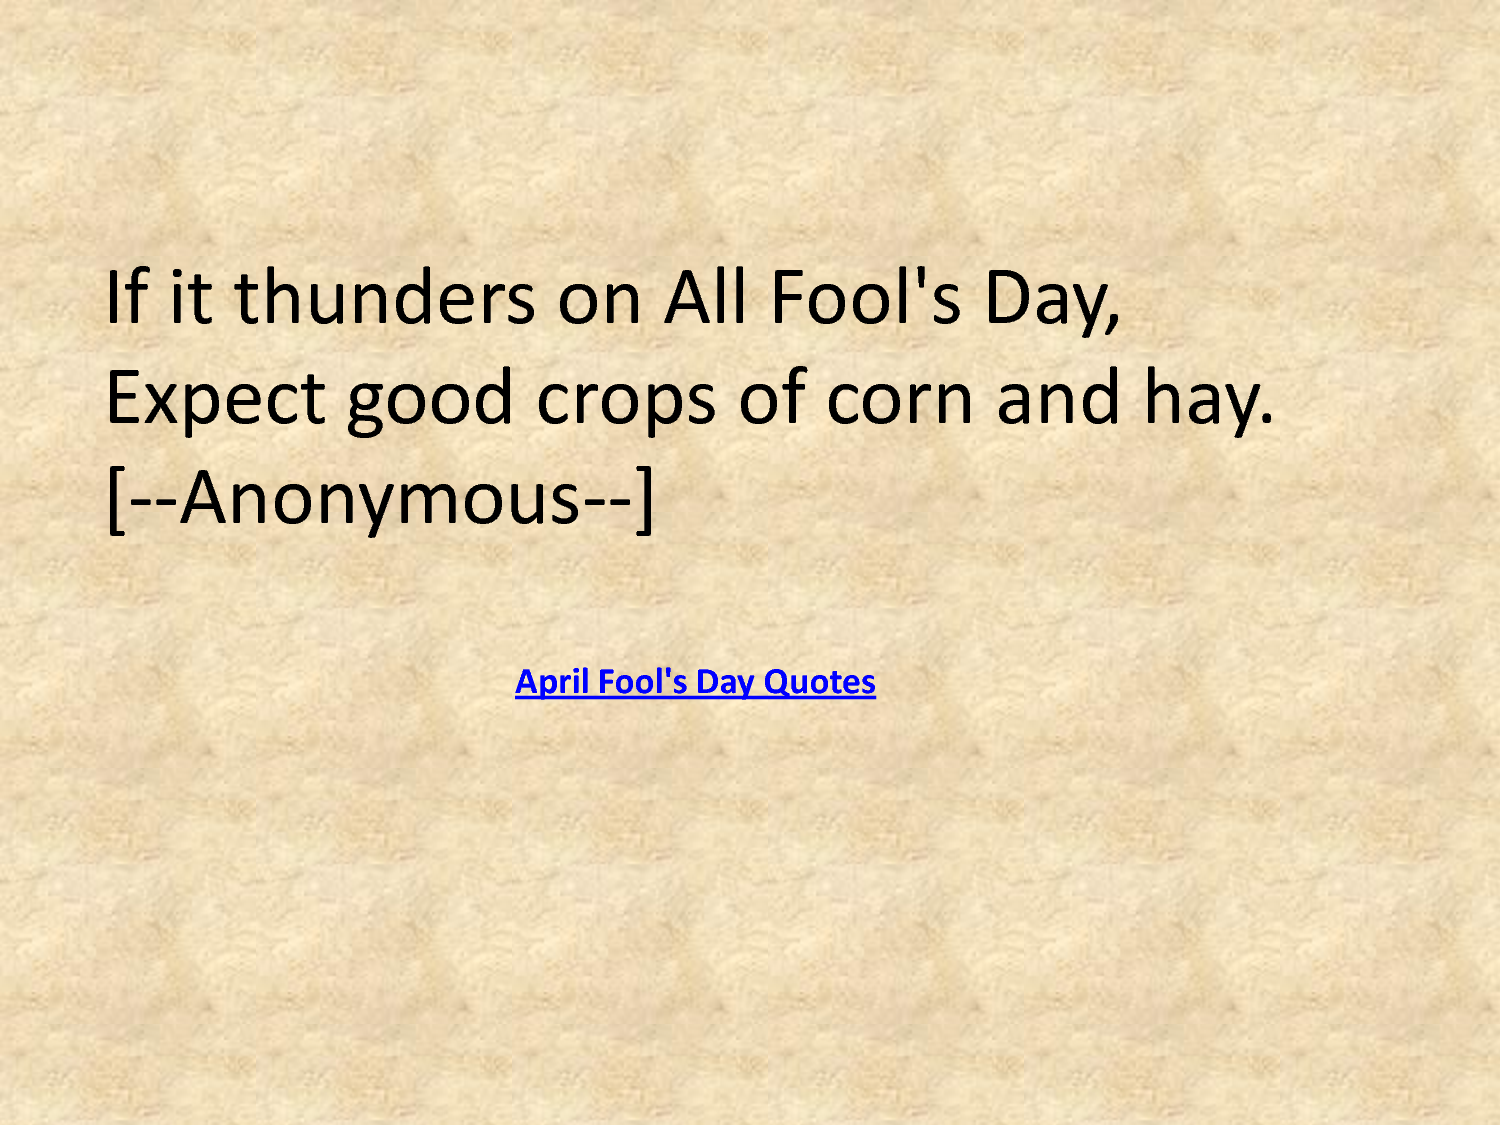 April Fool Day Quotes Funny Pictures Funny Facebook Status